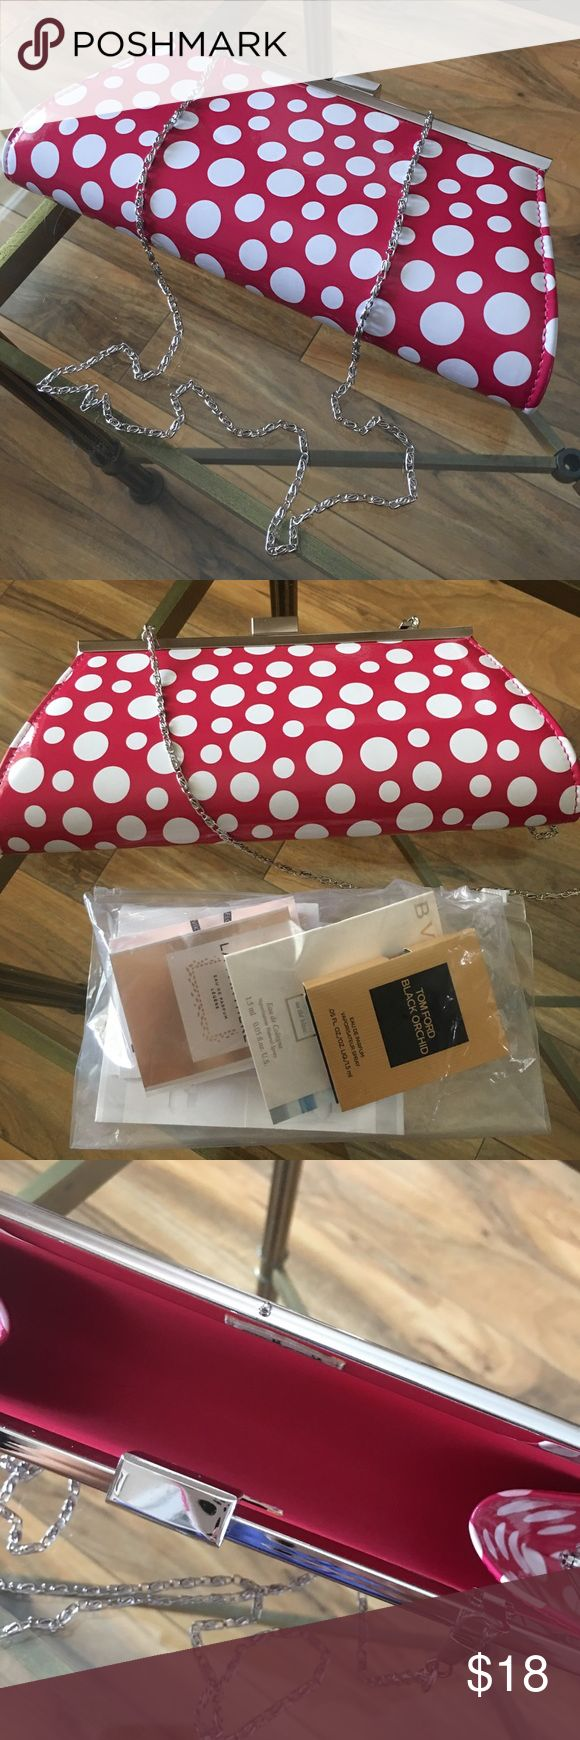 Neiman Marcus Pink Polka Dots Clutch w Samples Neiman Marcus Pink Polka Dots Clutch w Samples Neiman Marcus Bags Clutches & Wristlets